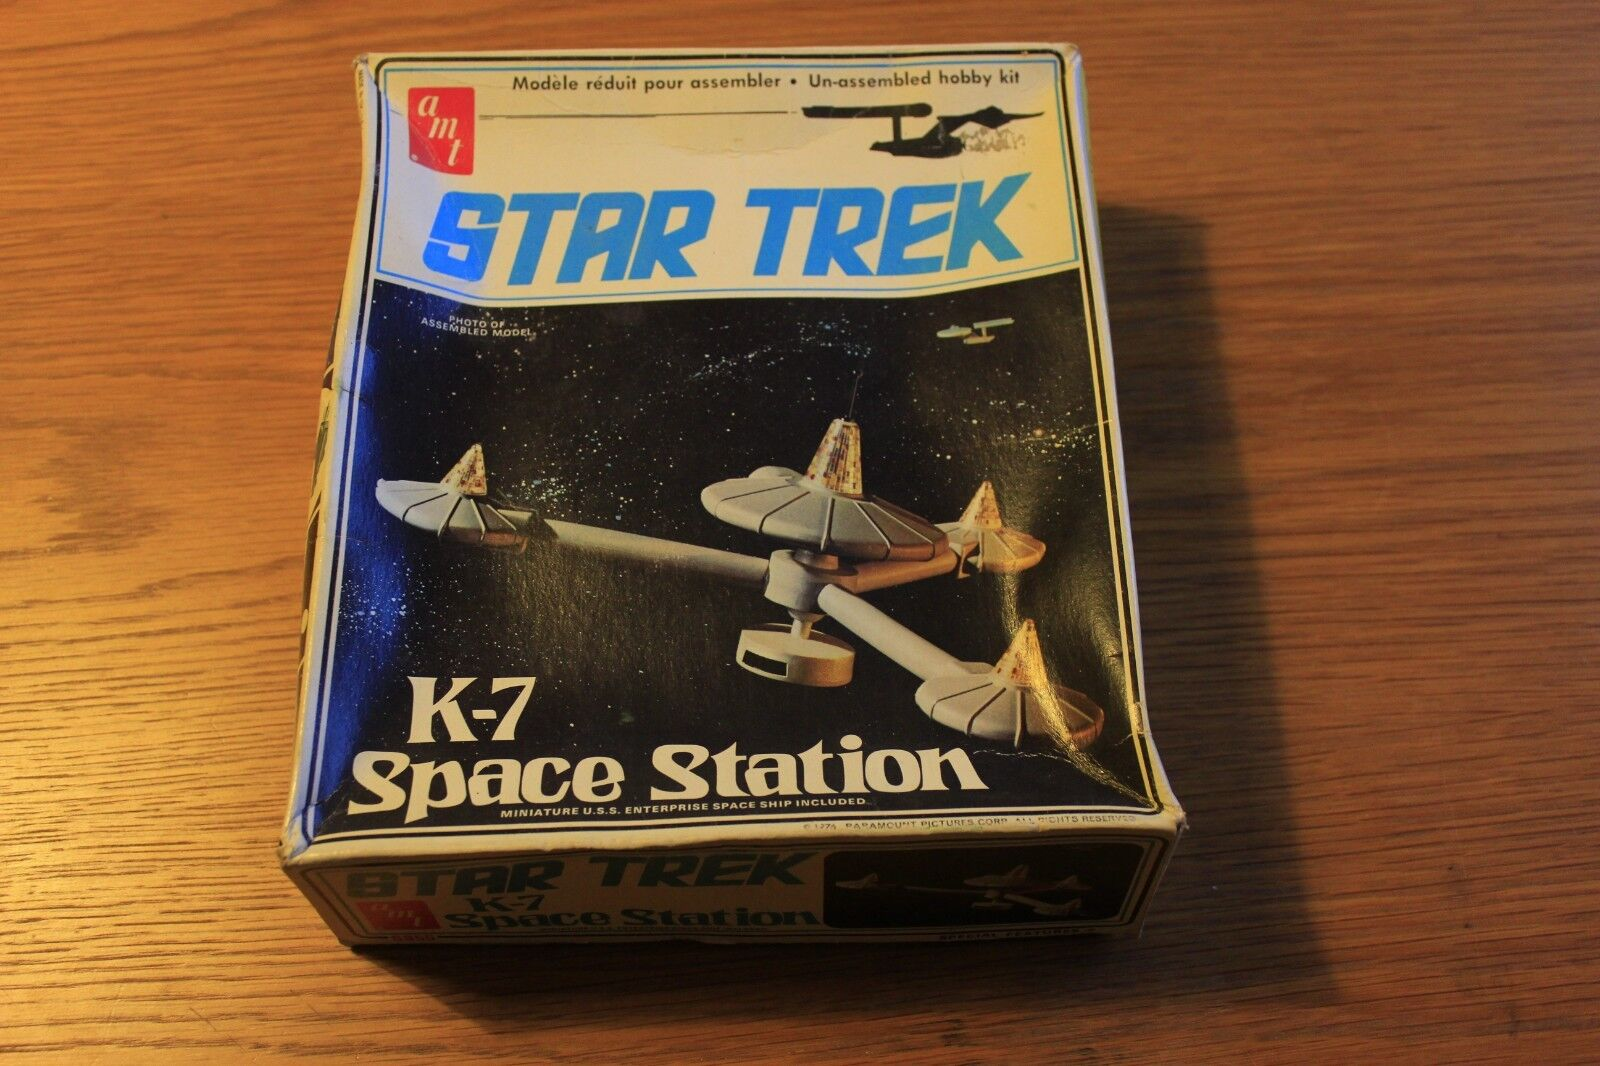 Star Trek K-7 Space Station amt model kit